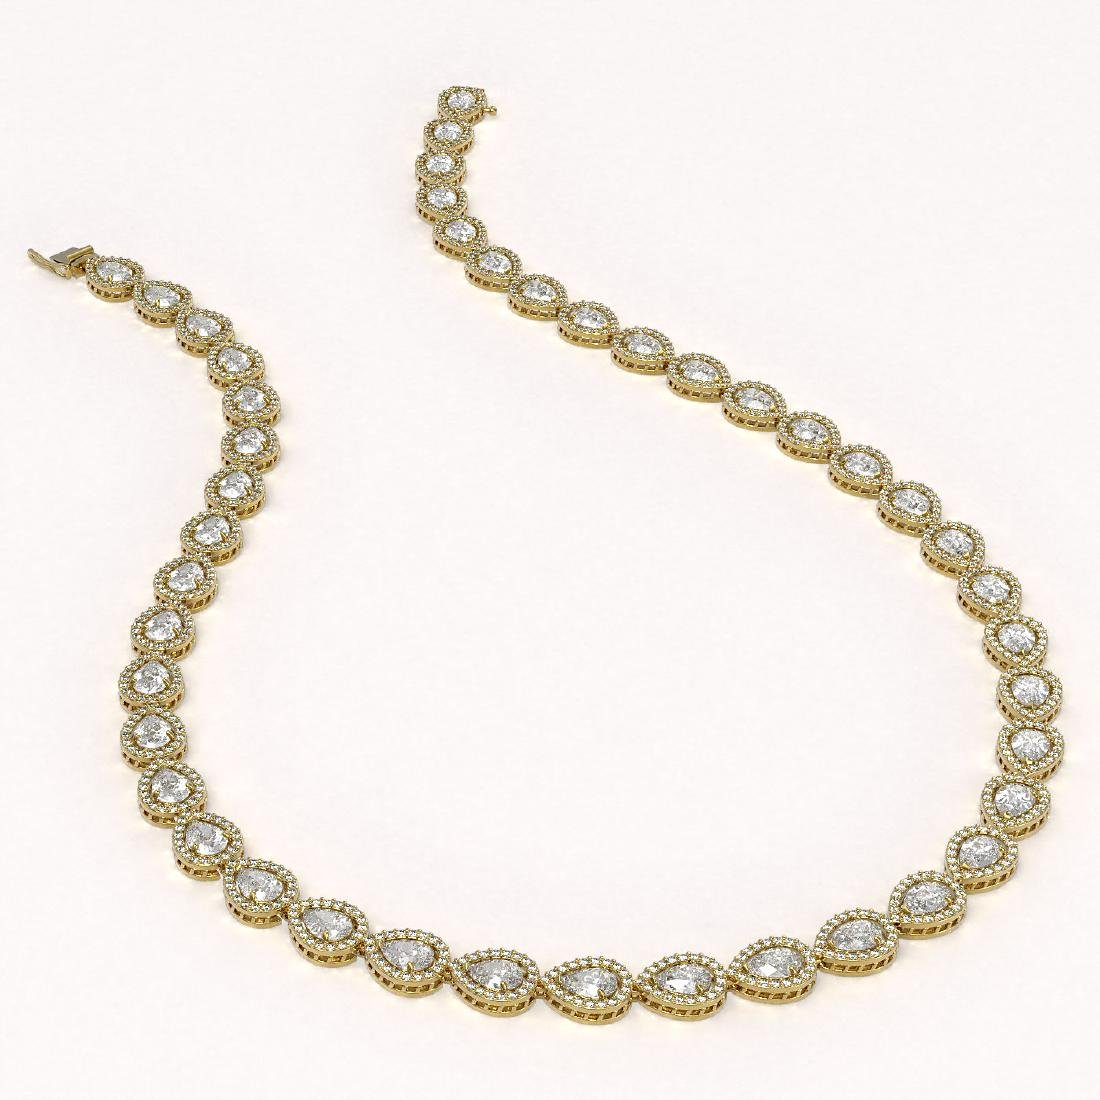 28.74 CTW Pear Diamond Designer Necklace 18K Yellow - 2